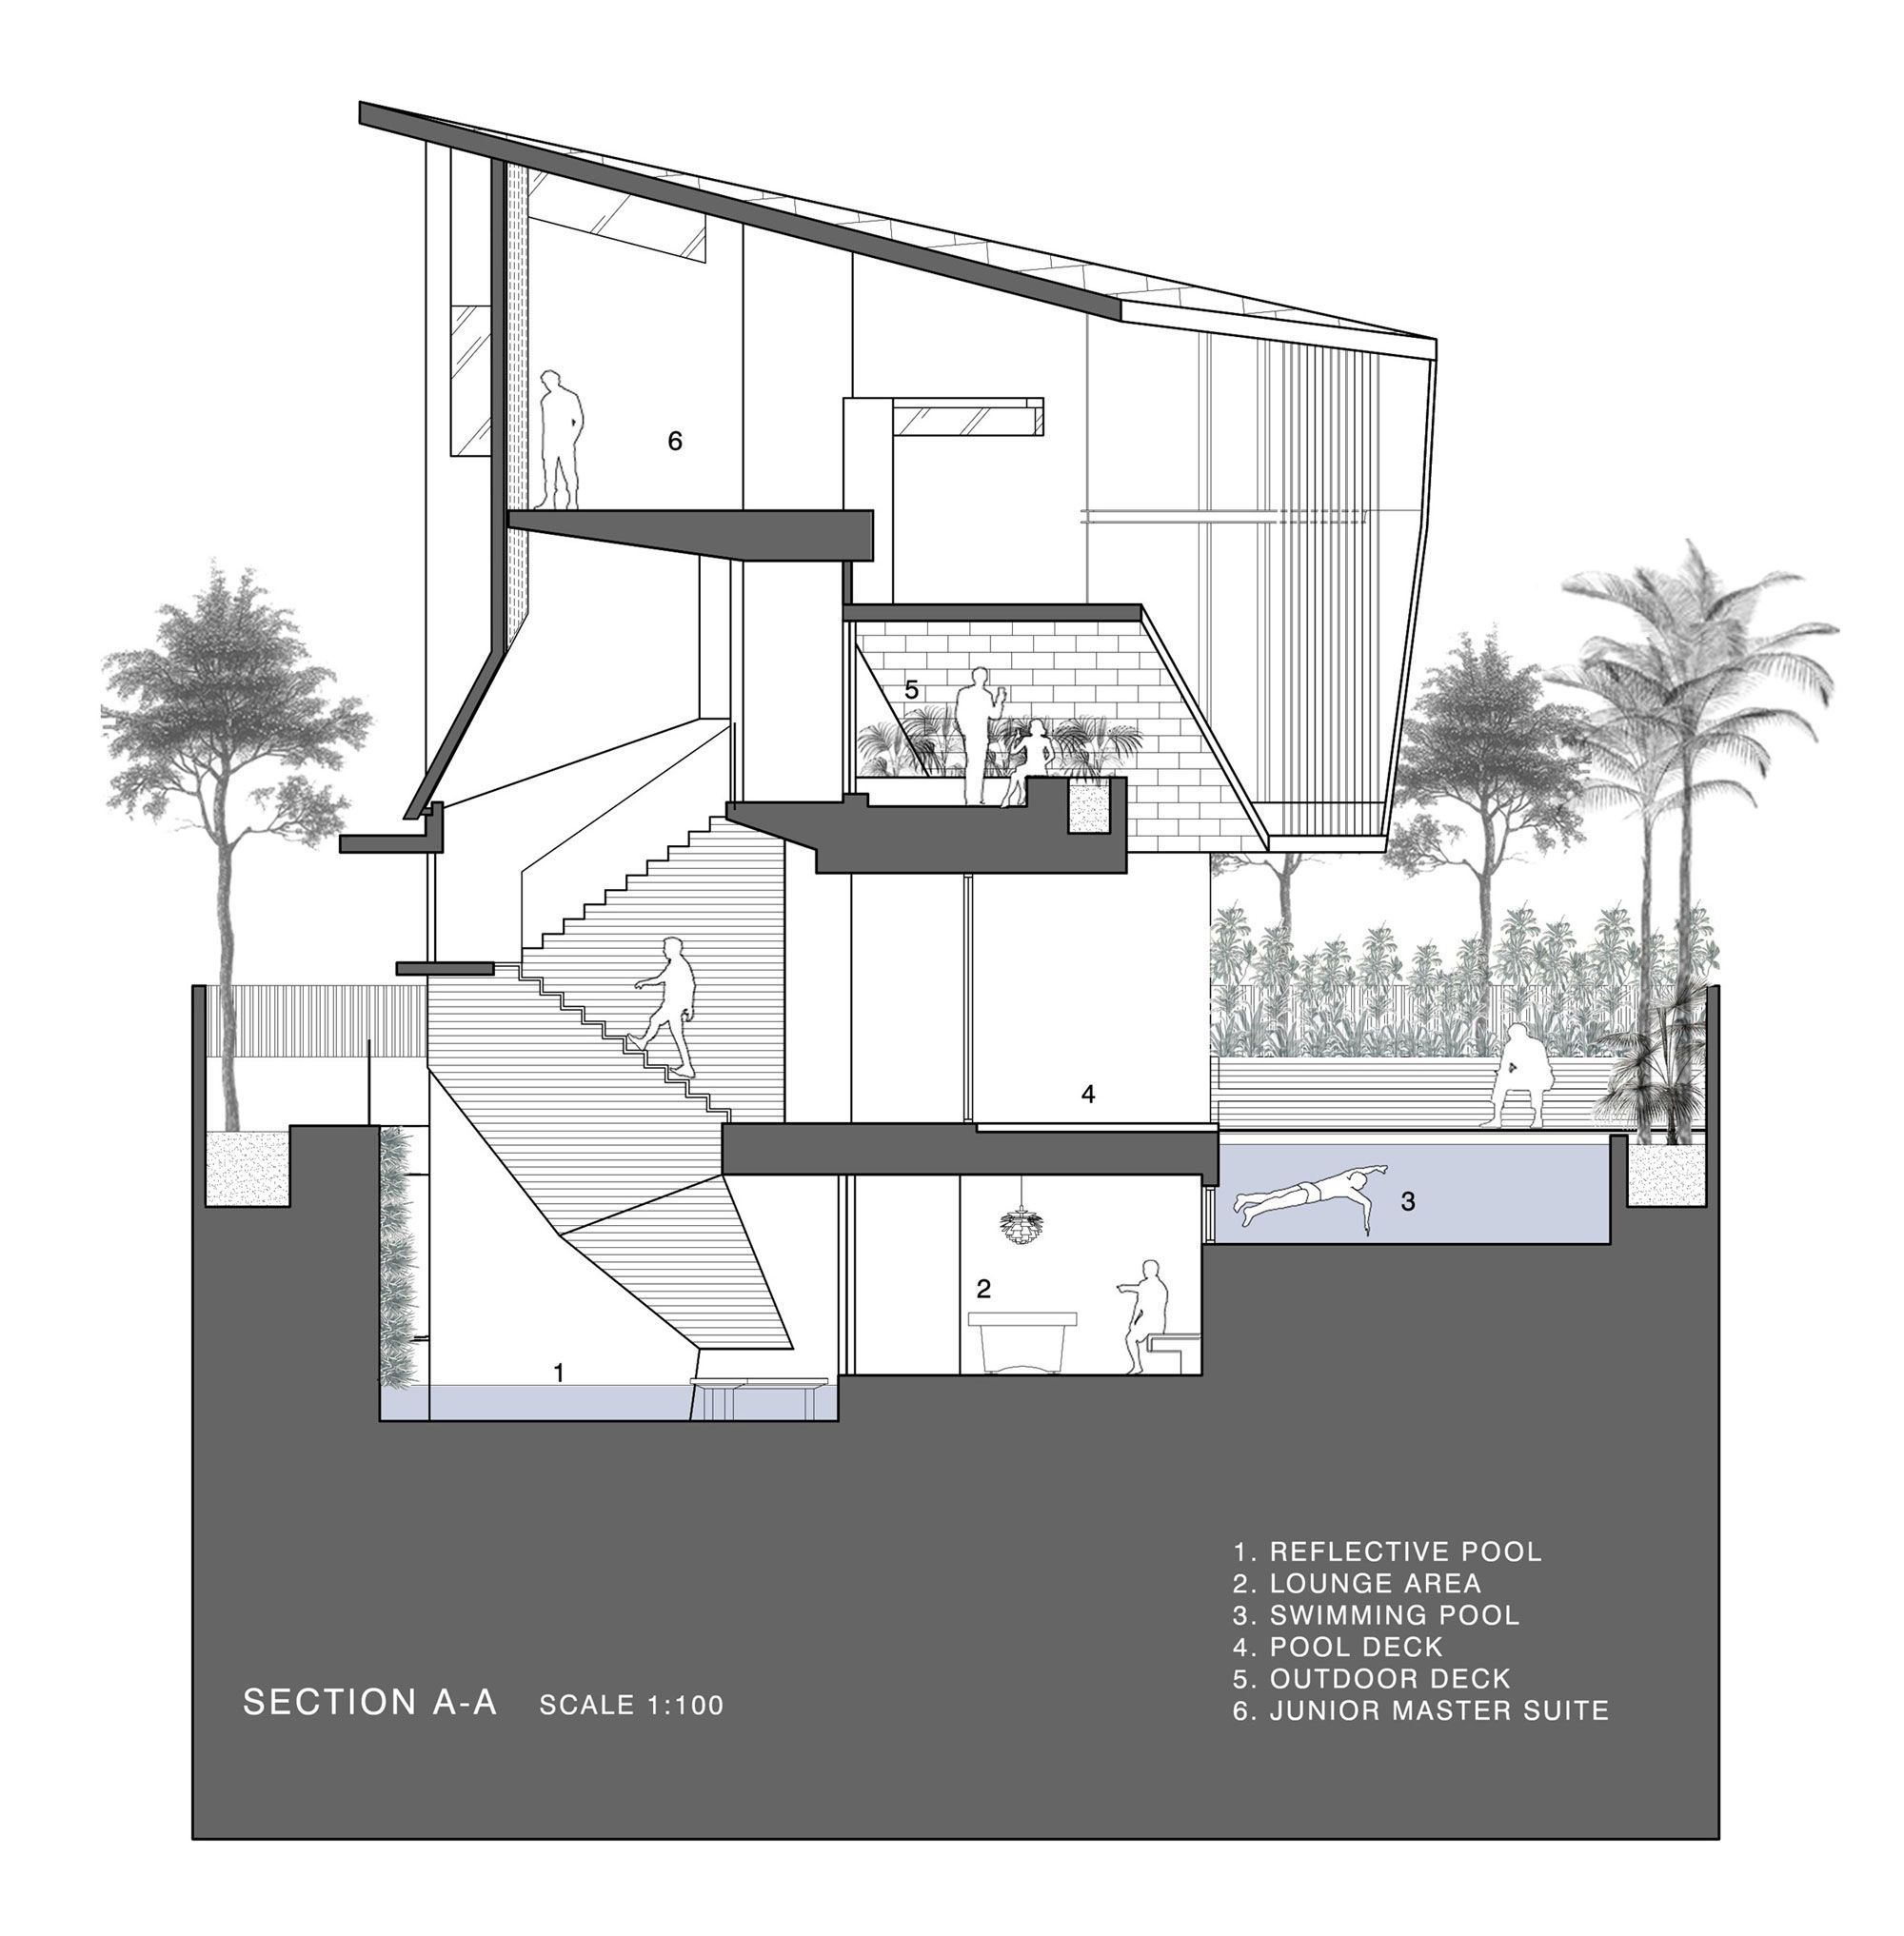 Origami House By Formwerkz Architects | Origami, Architects And Architecture